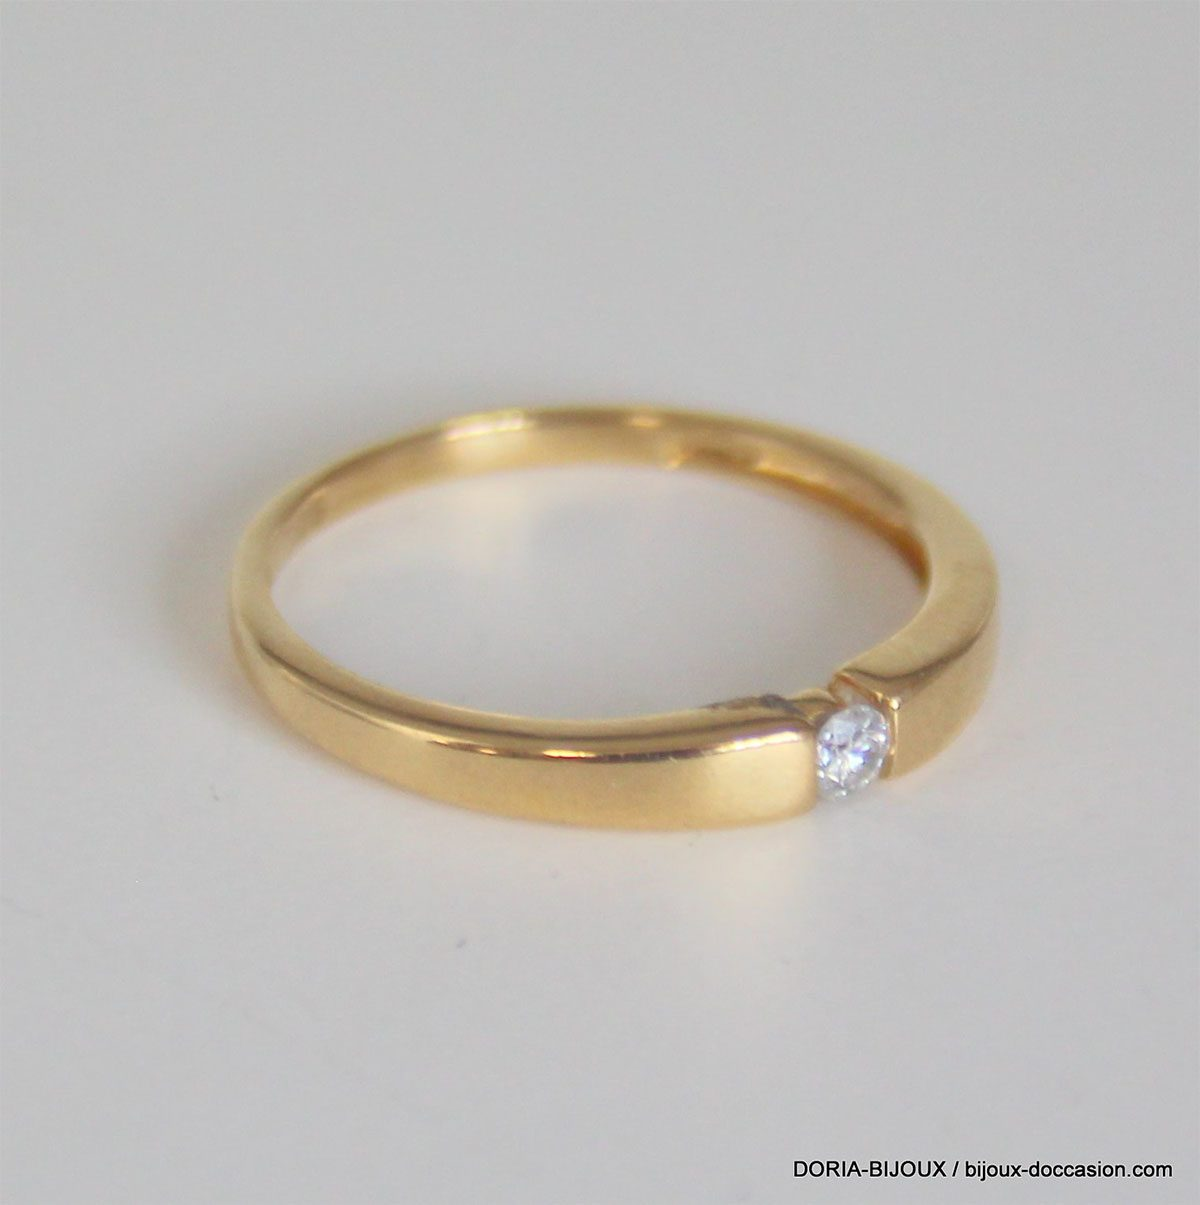 Bague Or 18k 750 Solitaire Diamants - 0.06grs